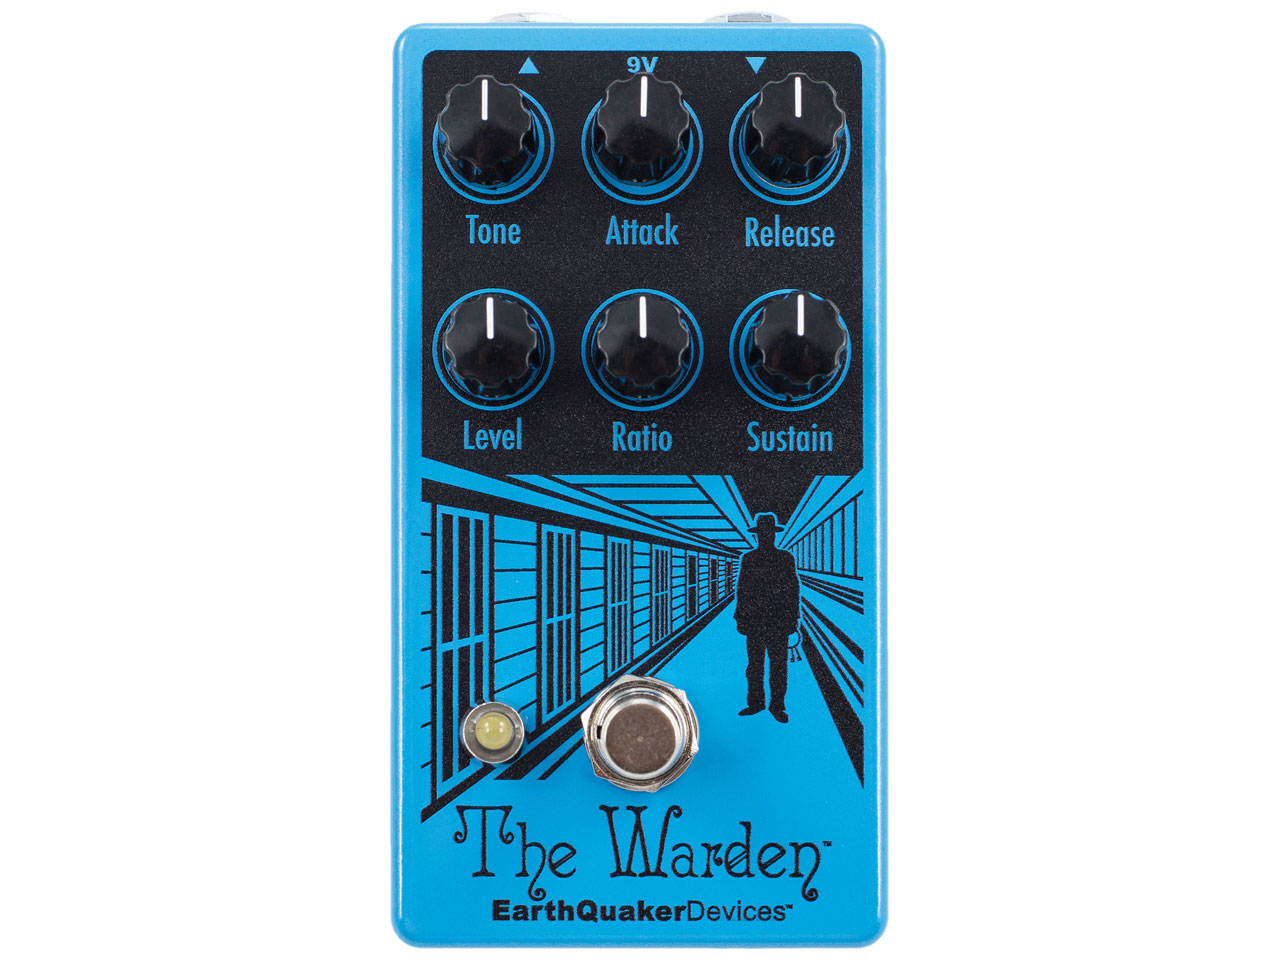 EarthQuaker Devices(アースクエイカーデバイセス) The Warden (コンプレッサー)